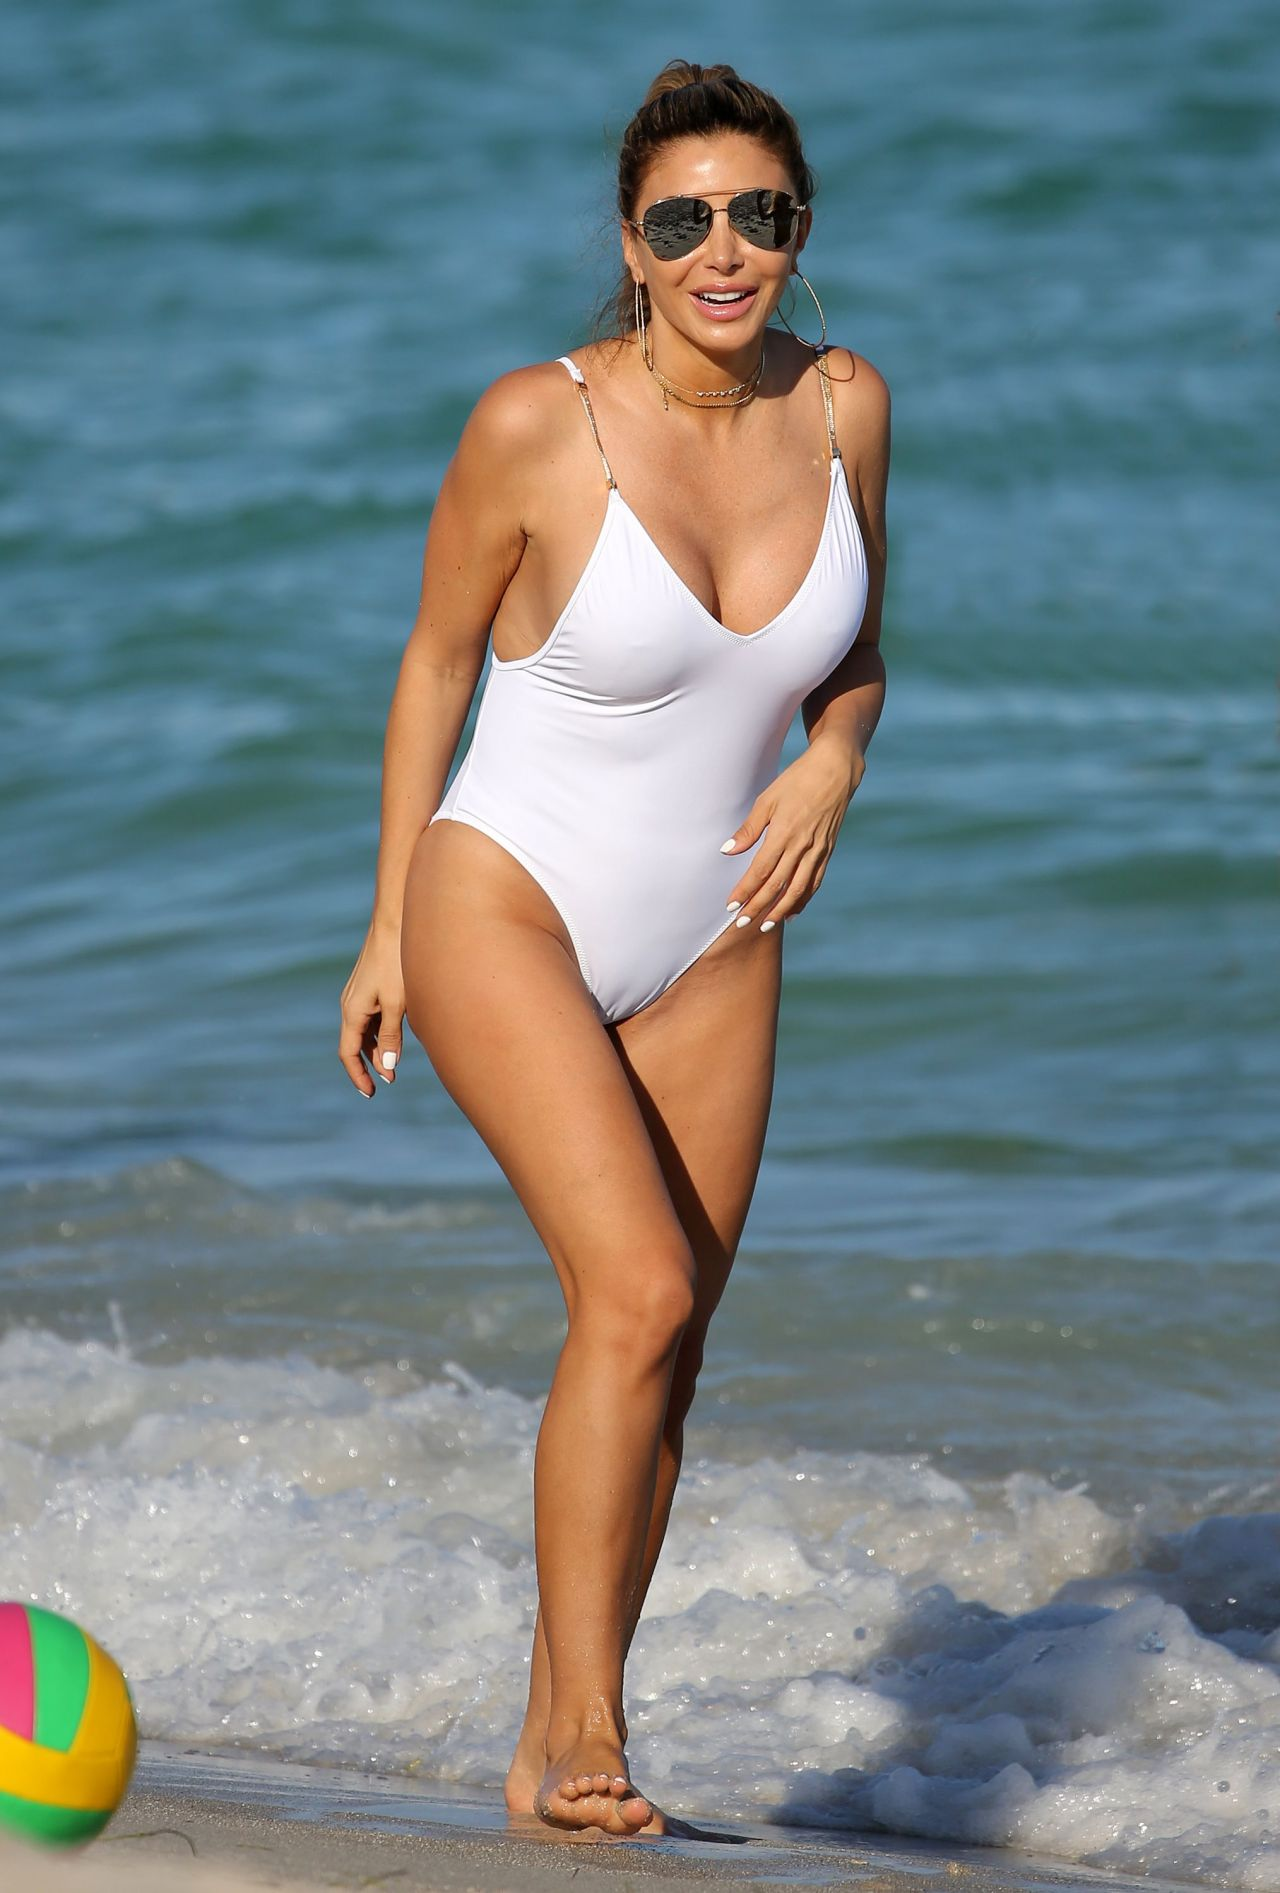 87e7db4632 Larsa Pippen Shows Off Her Curves in a White Swimsuit - Beach in Miami  11/13/ 2016